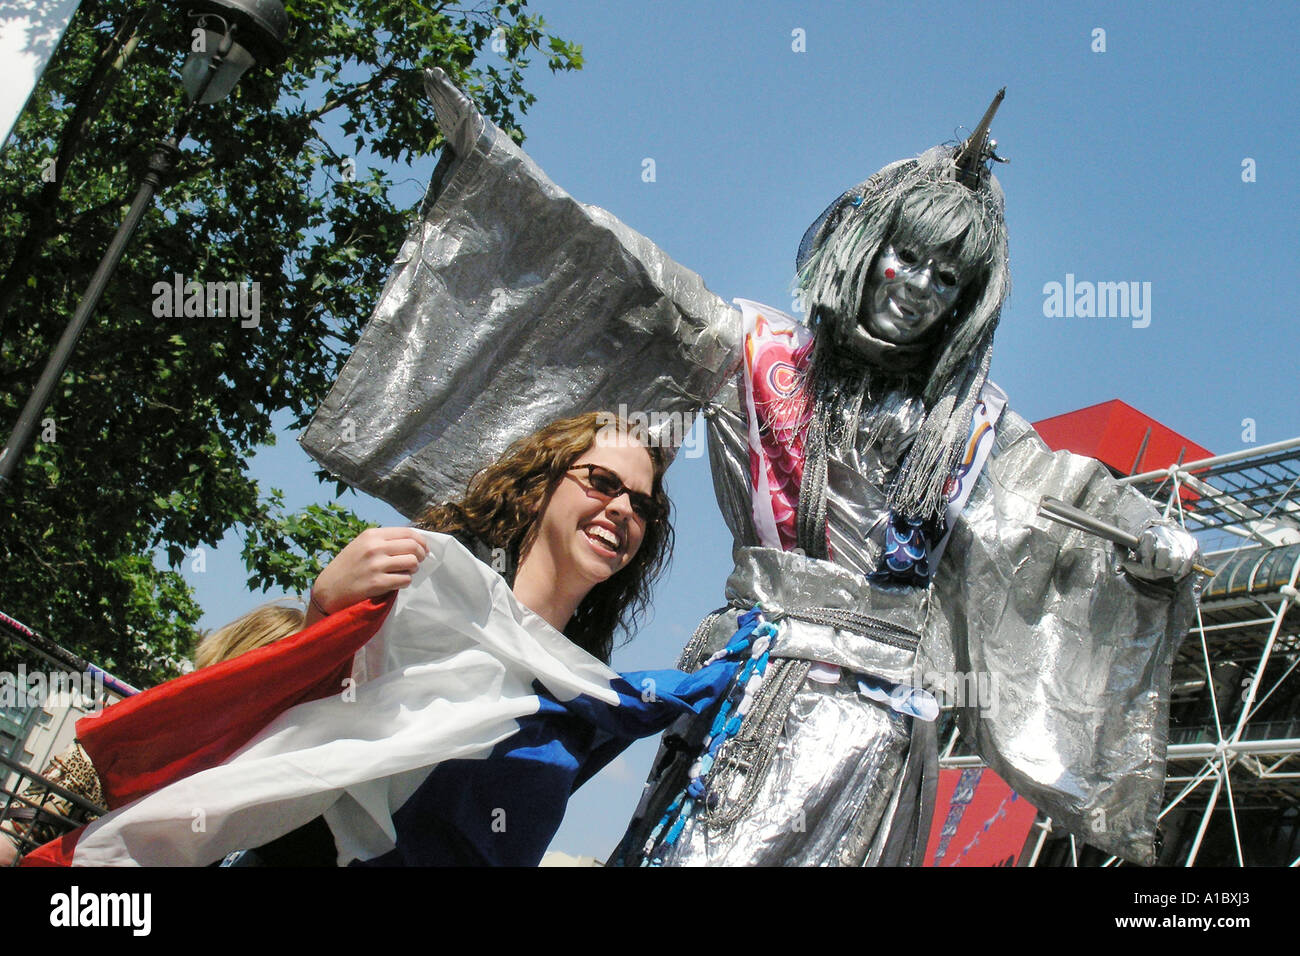 tourist and street theatre artist smiling at camera Paris France - Stock Image